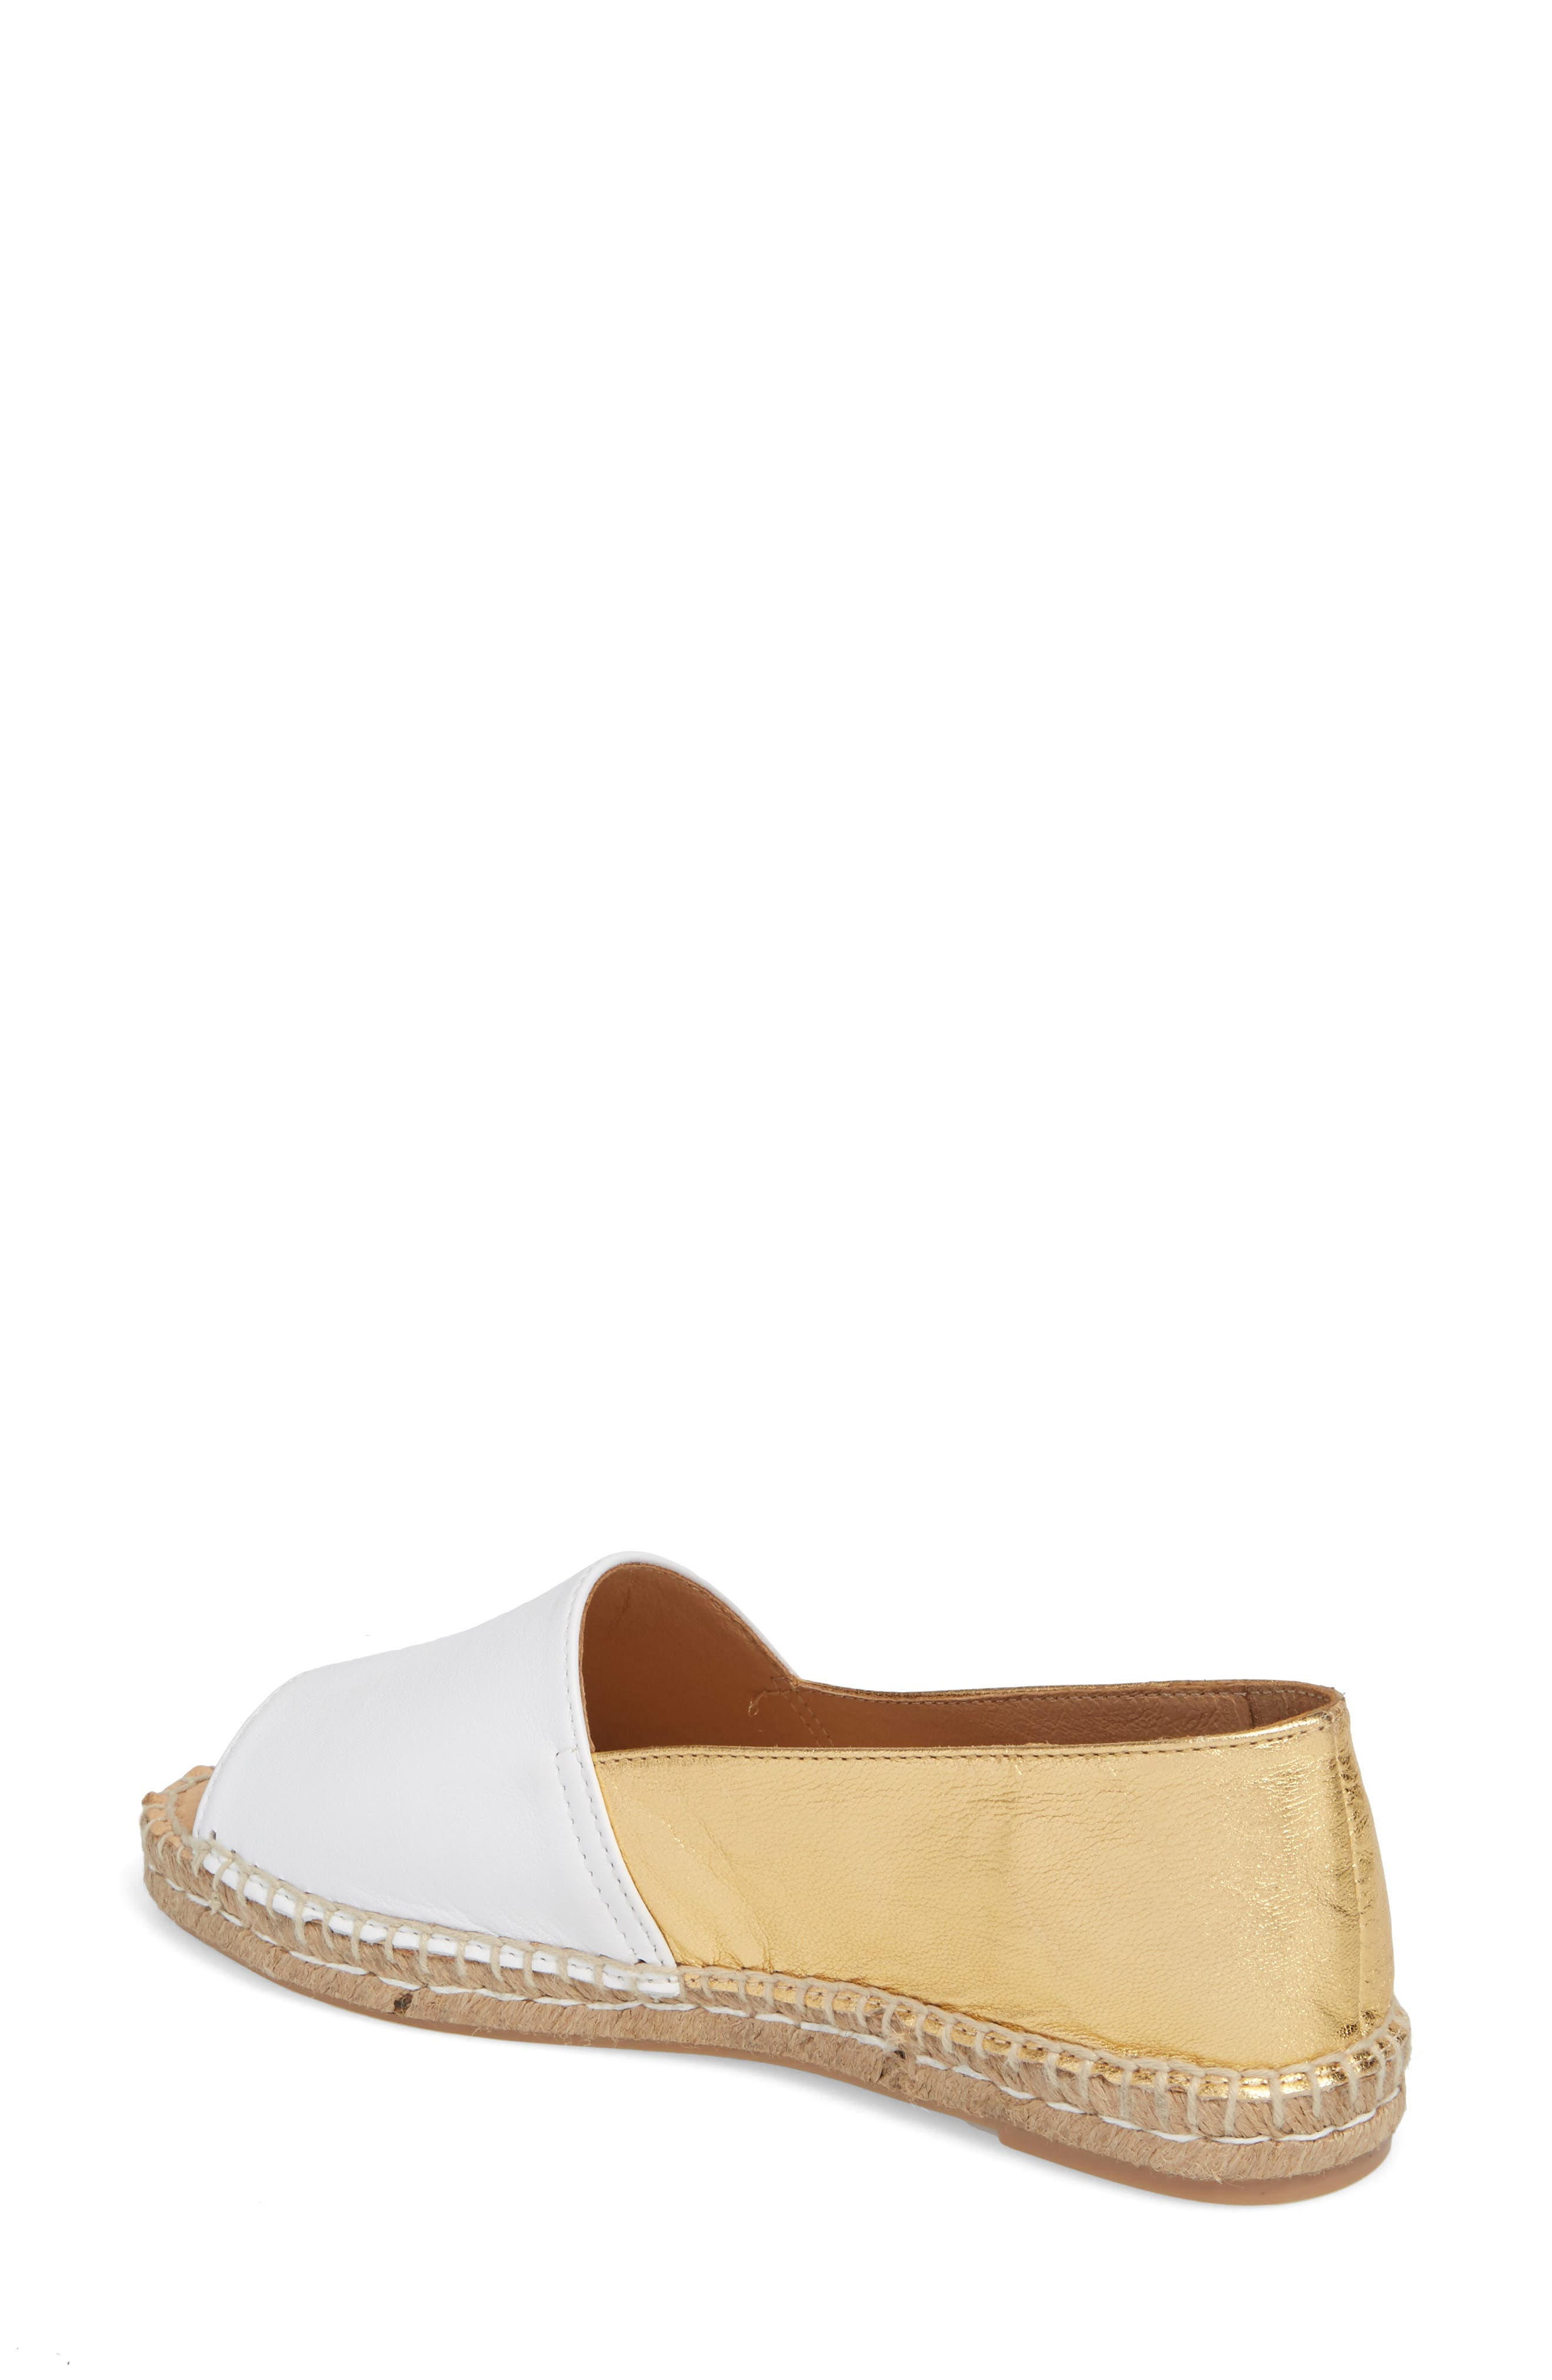 Milly Espadrille,                             Alternate thumbnail 2, color,                             Gold Leather